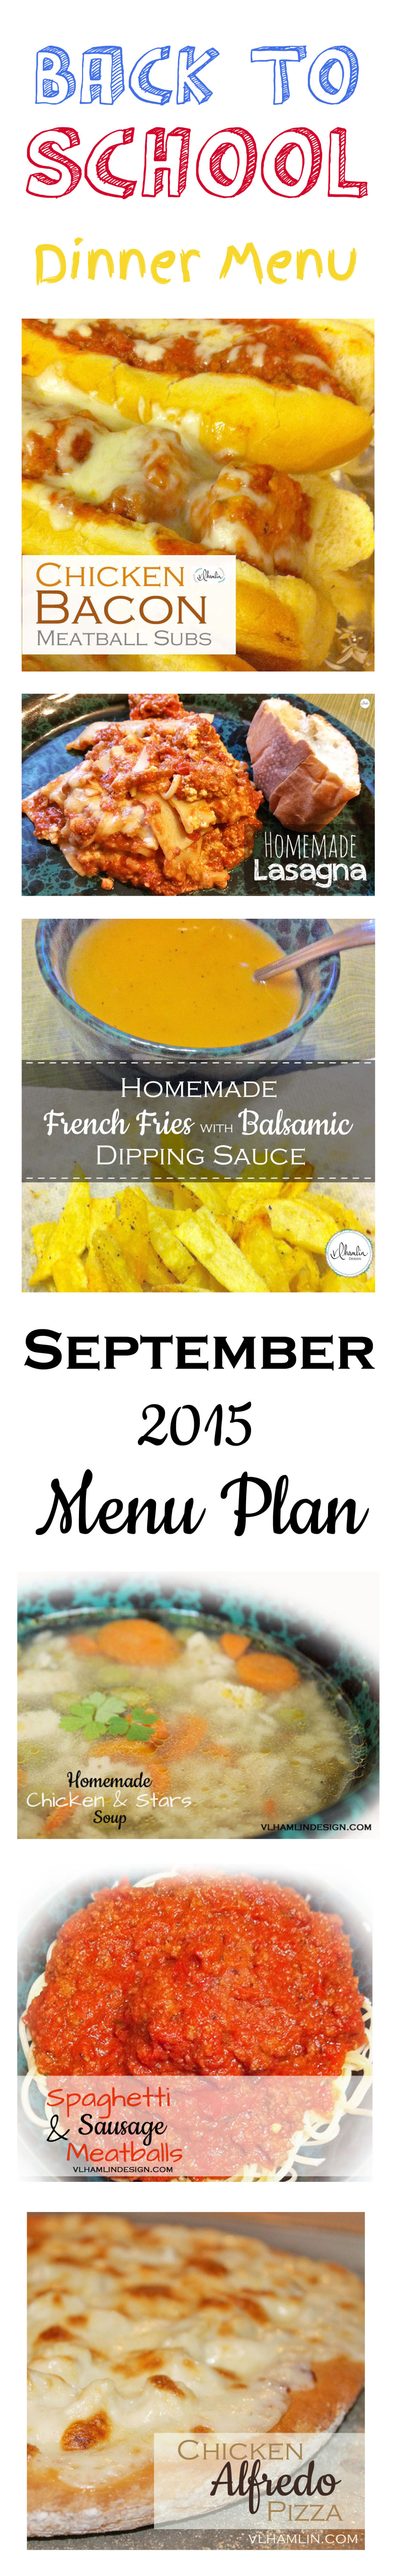 September 2015 Menu Plan